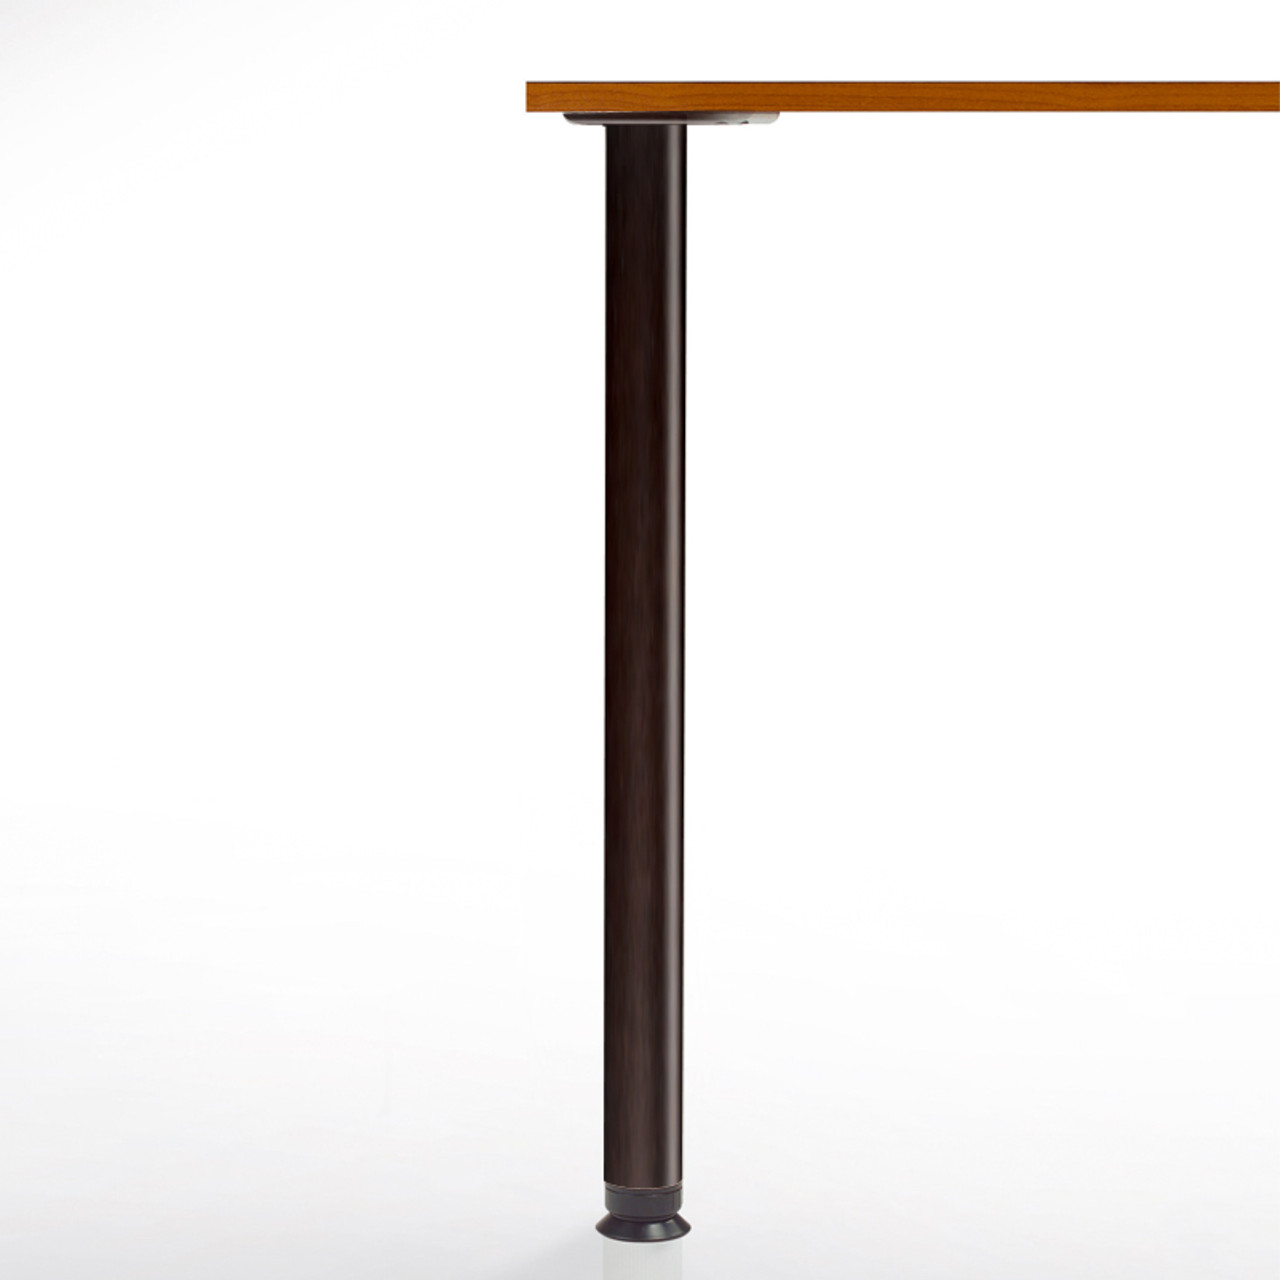 Zoom Table Legs, 27-3/4'' height,  2-3/8'' diameter leg 4'' adjustable foot, black matte - replacementtablelegs.com